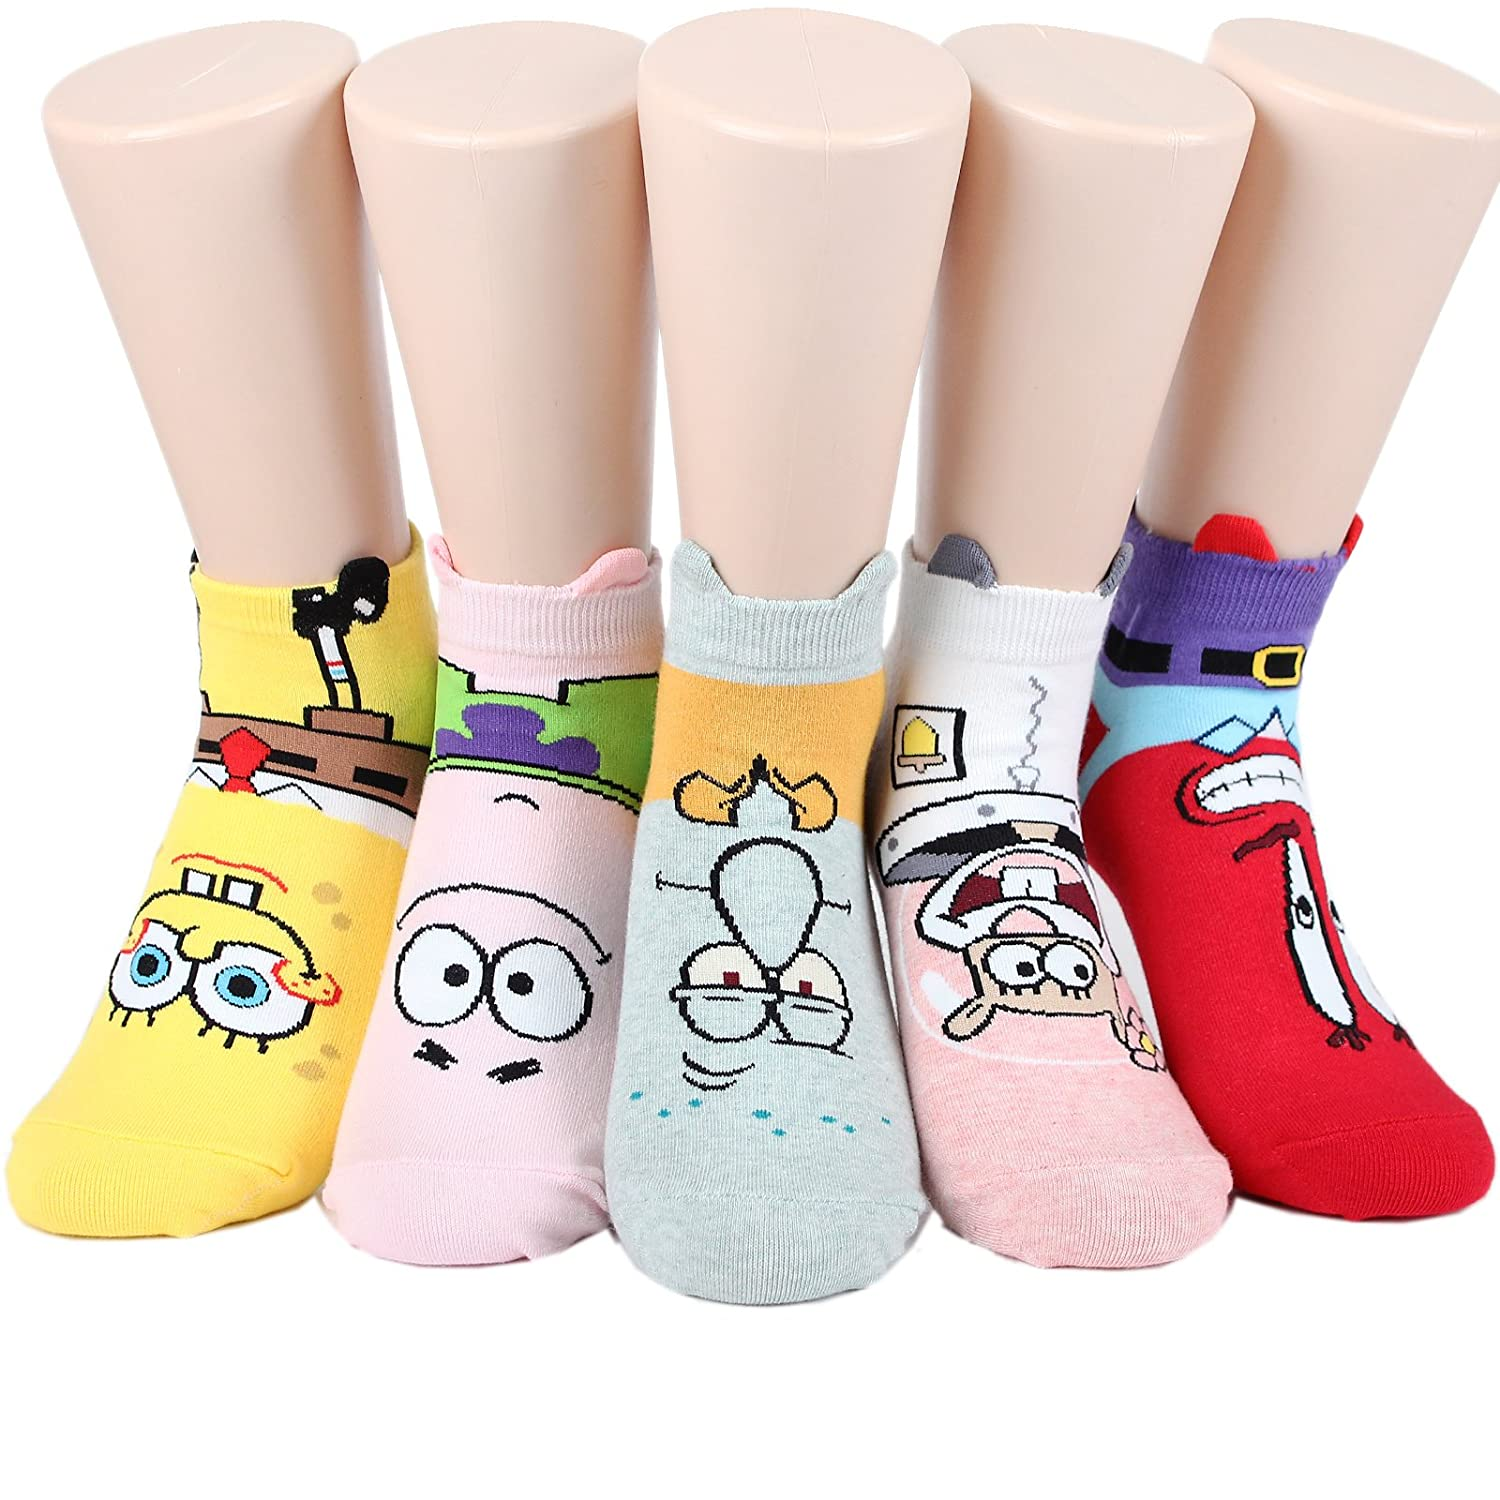 Socksense Animation Character Disney Series Women's Original Socks kiki socks